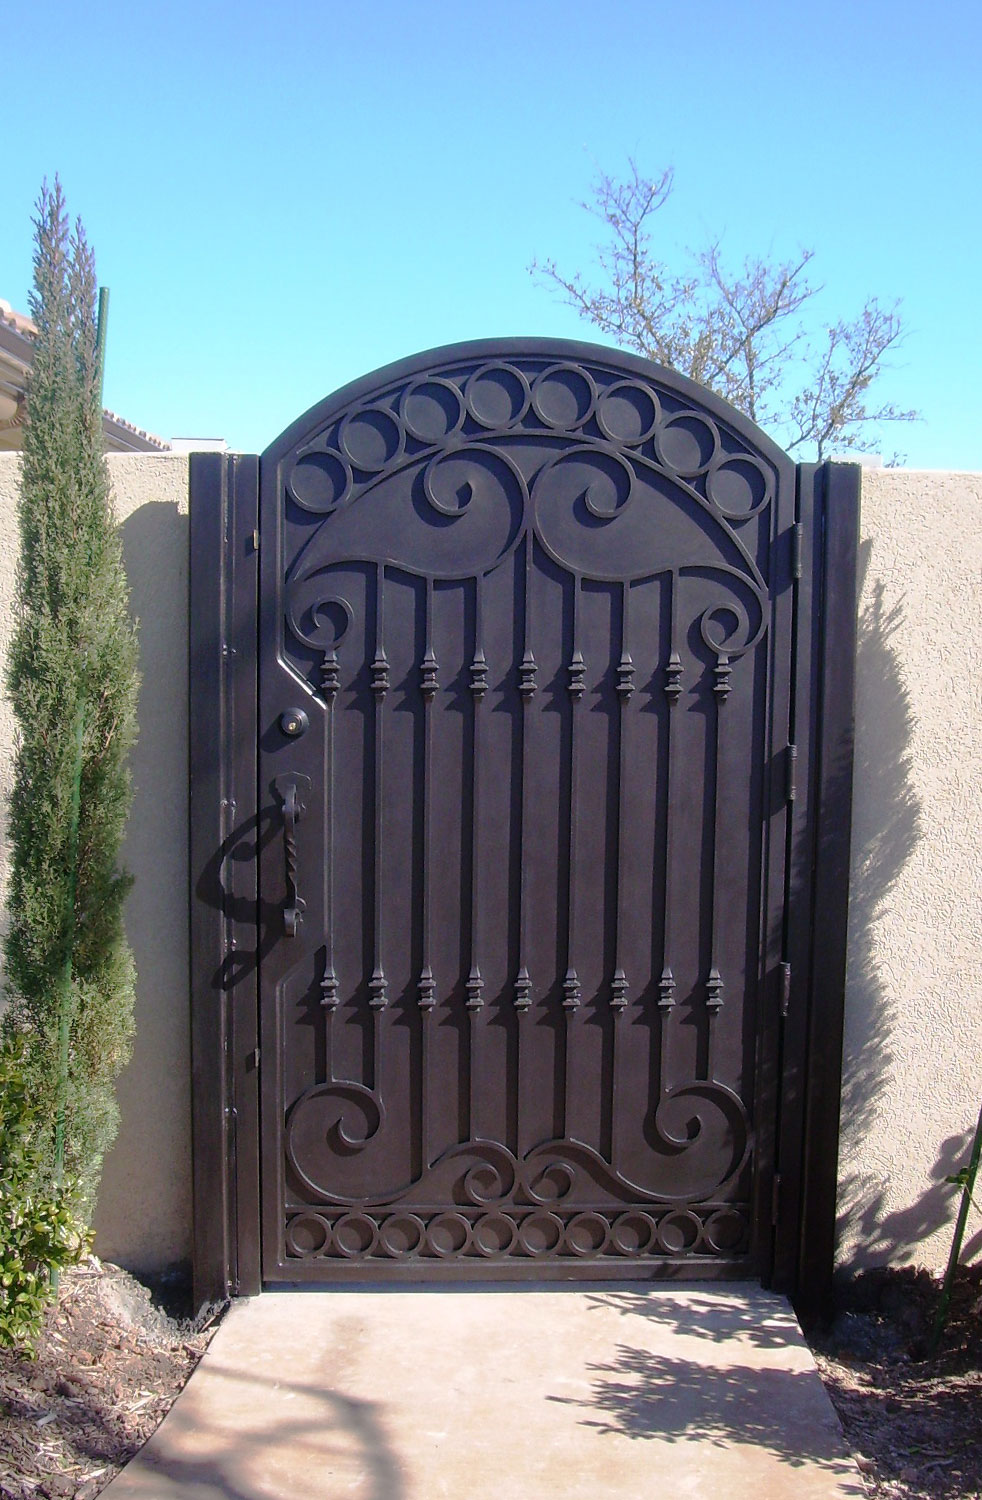 Handmade Top Villa Wrought Iron Gate One Stop Shipping To USA Hench-lg13